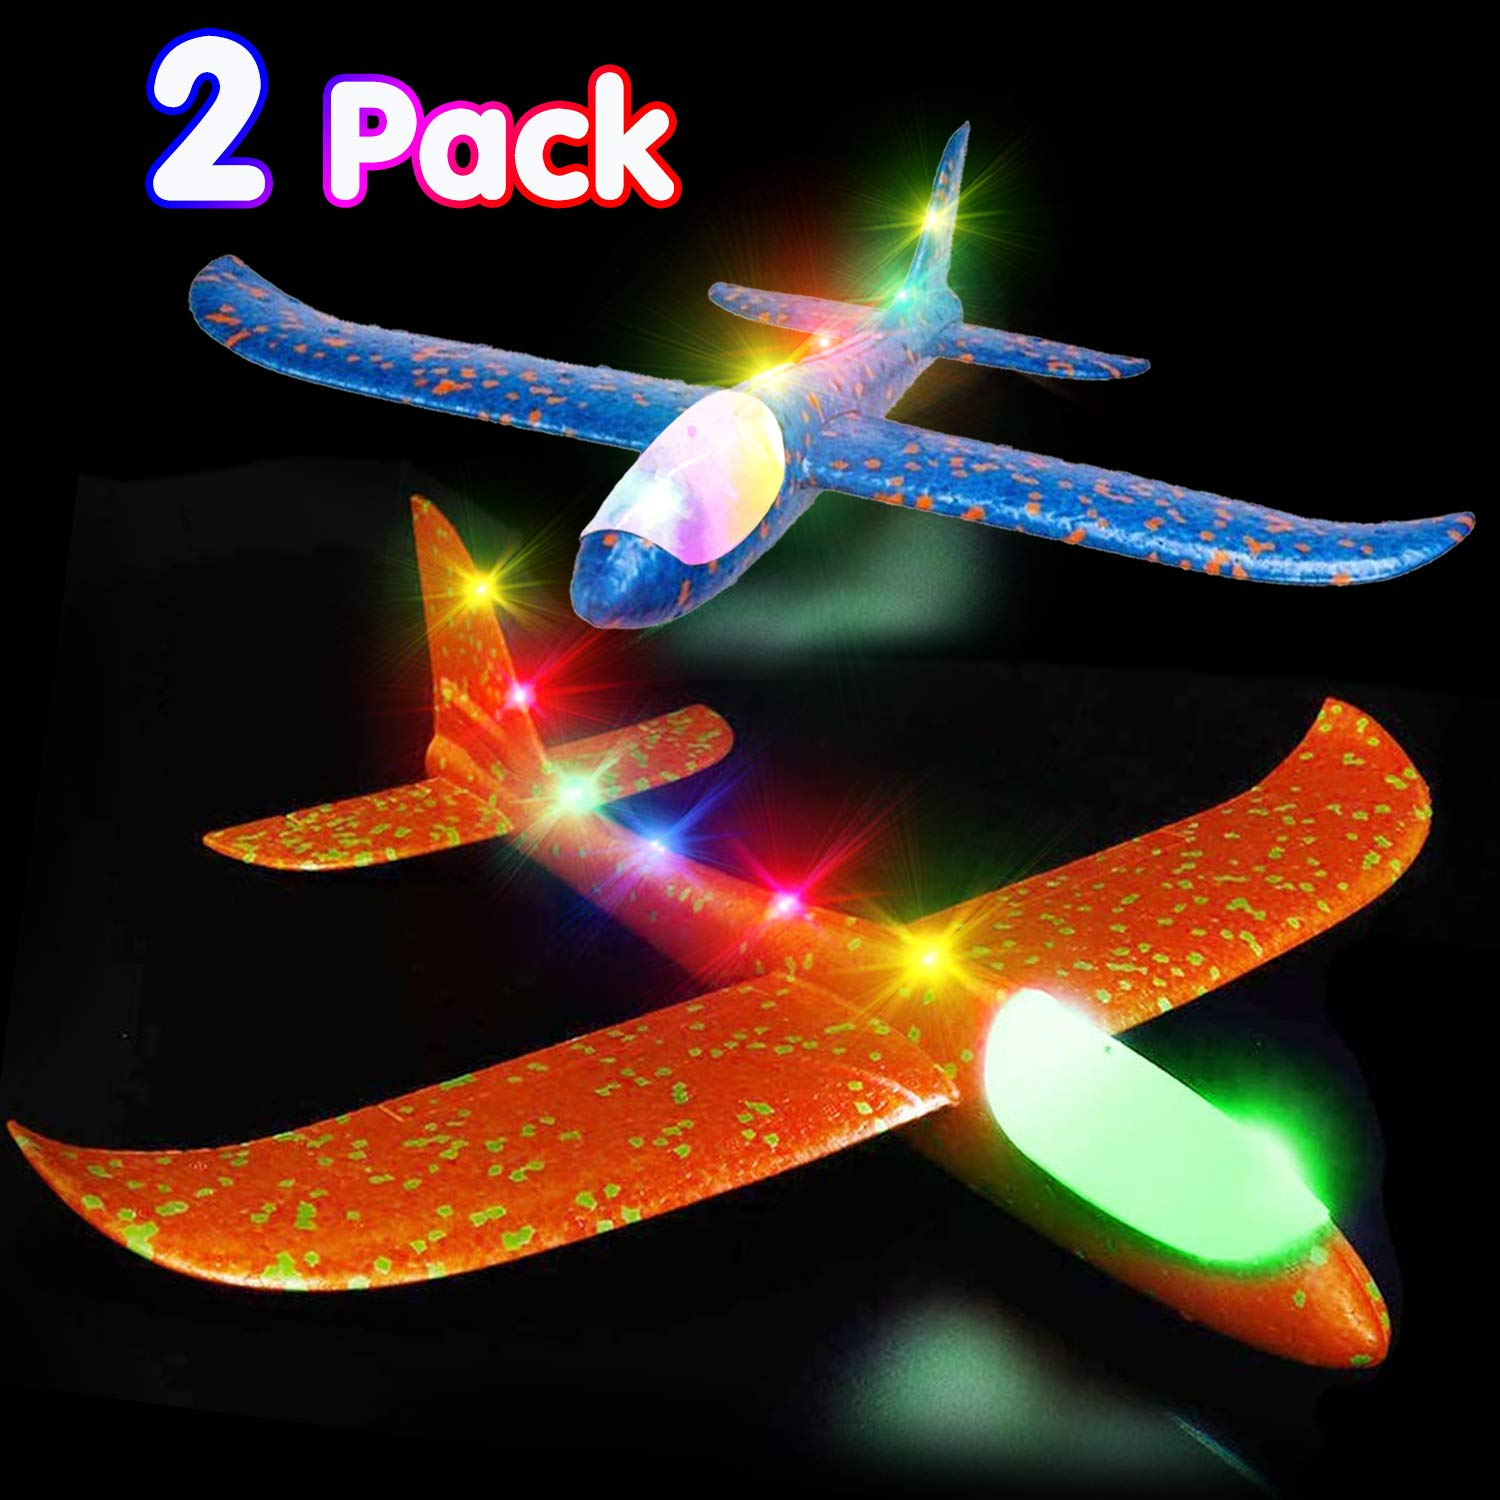 Airplane Toys Throwing Foam Plane, 20 Inch Gaint LED Light Up Glider Airplane Model Toy with Dual Flight Mode Challenging Outdoor Plane Jet Sports Game Flying Toys Gift for Kids Toddlers Teen (4 Pack) by AMENON